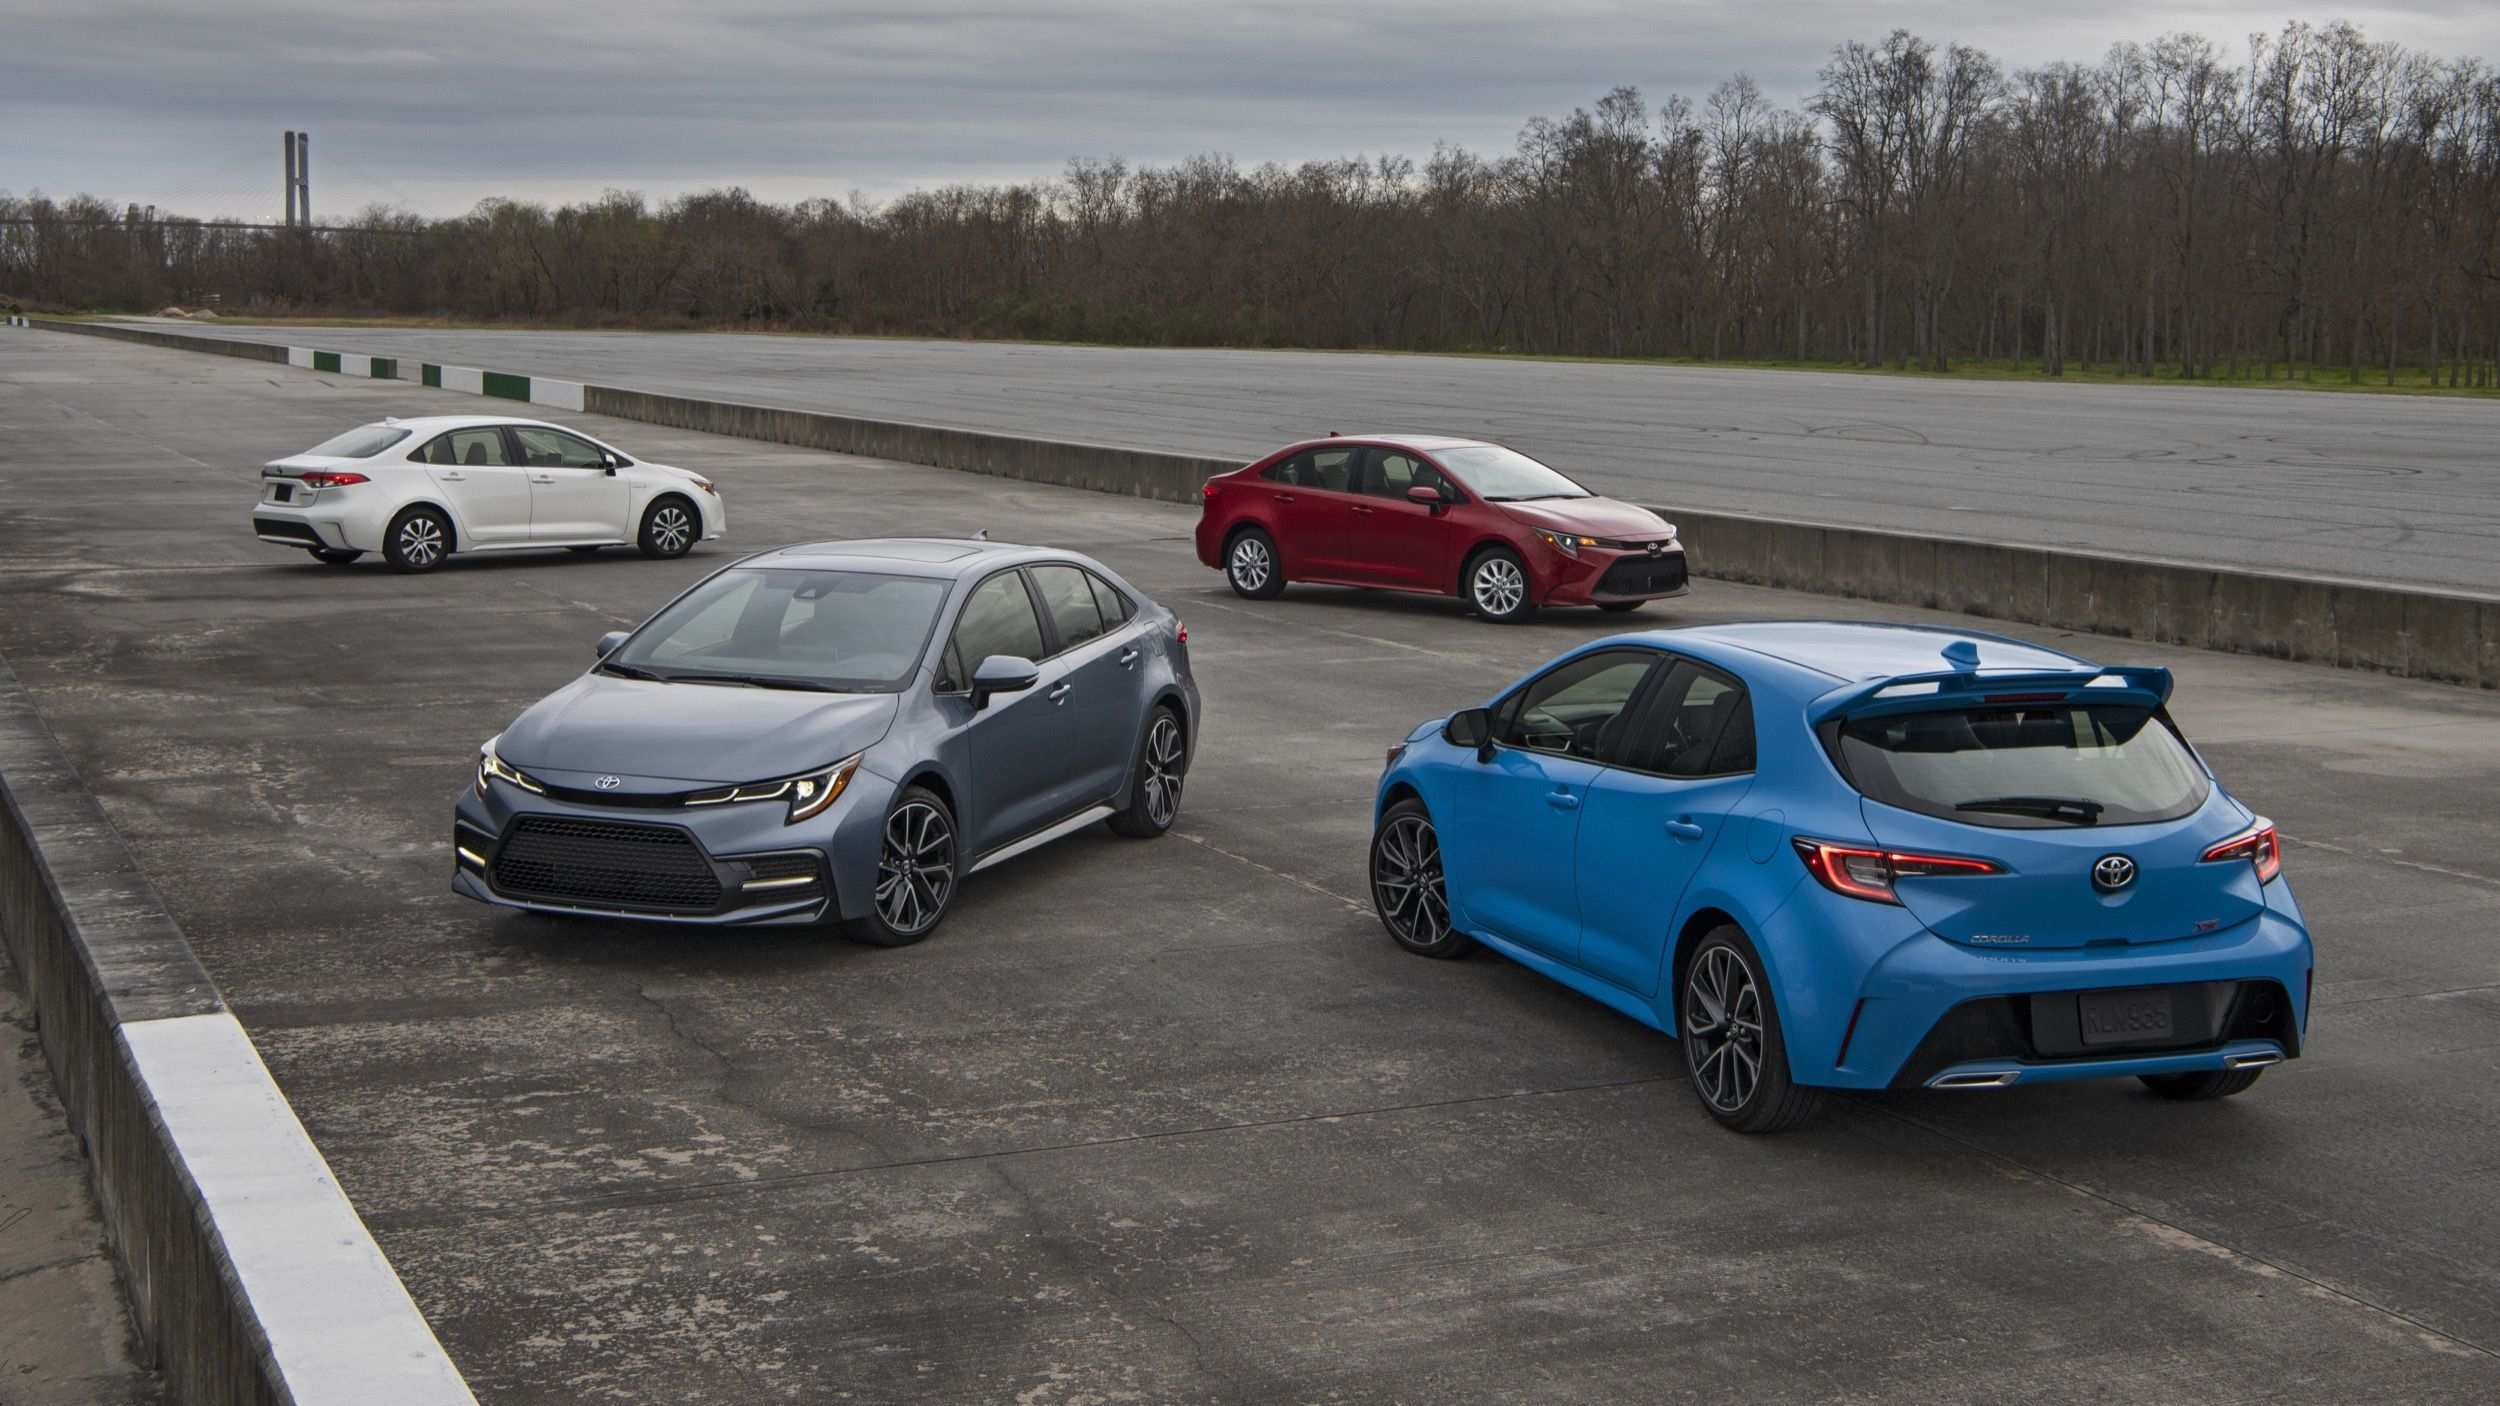 52 All New 2020 Toyota Corolla Hatchback Redesign And Review